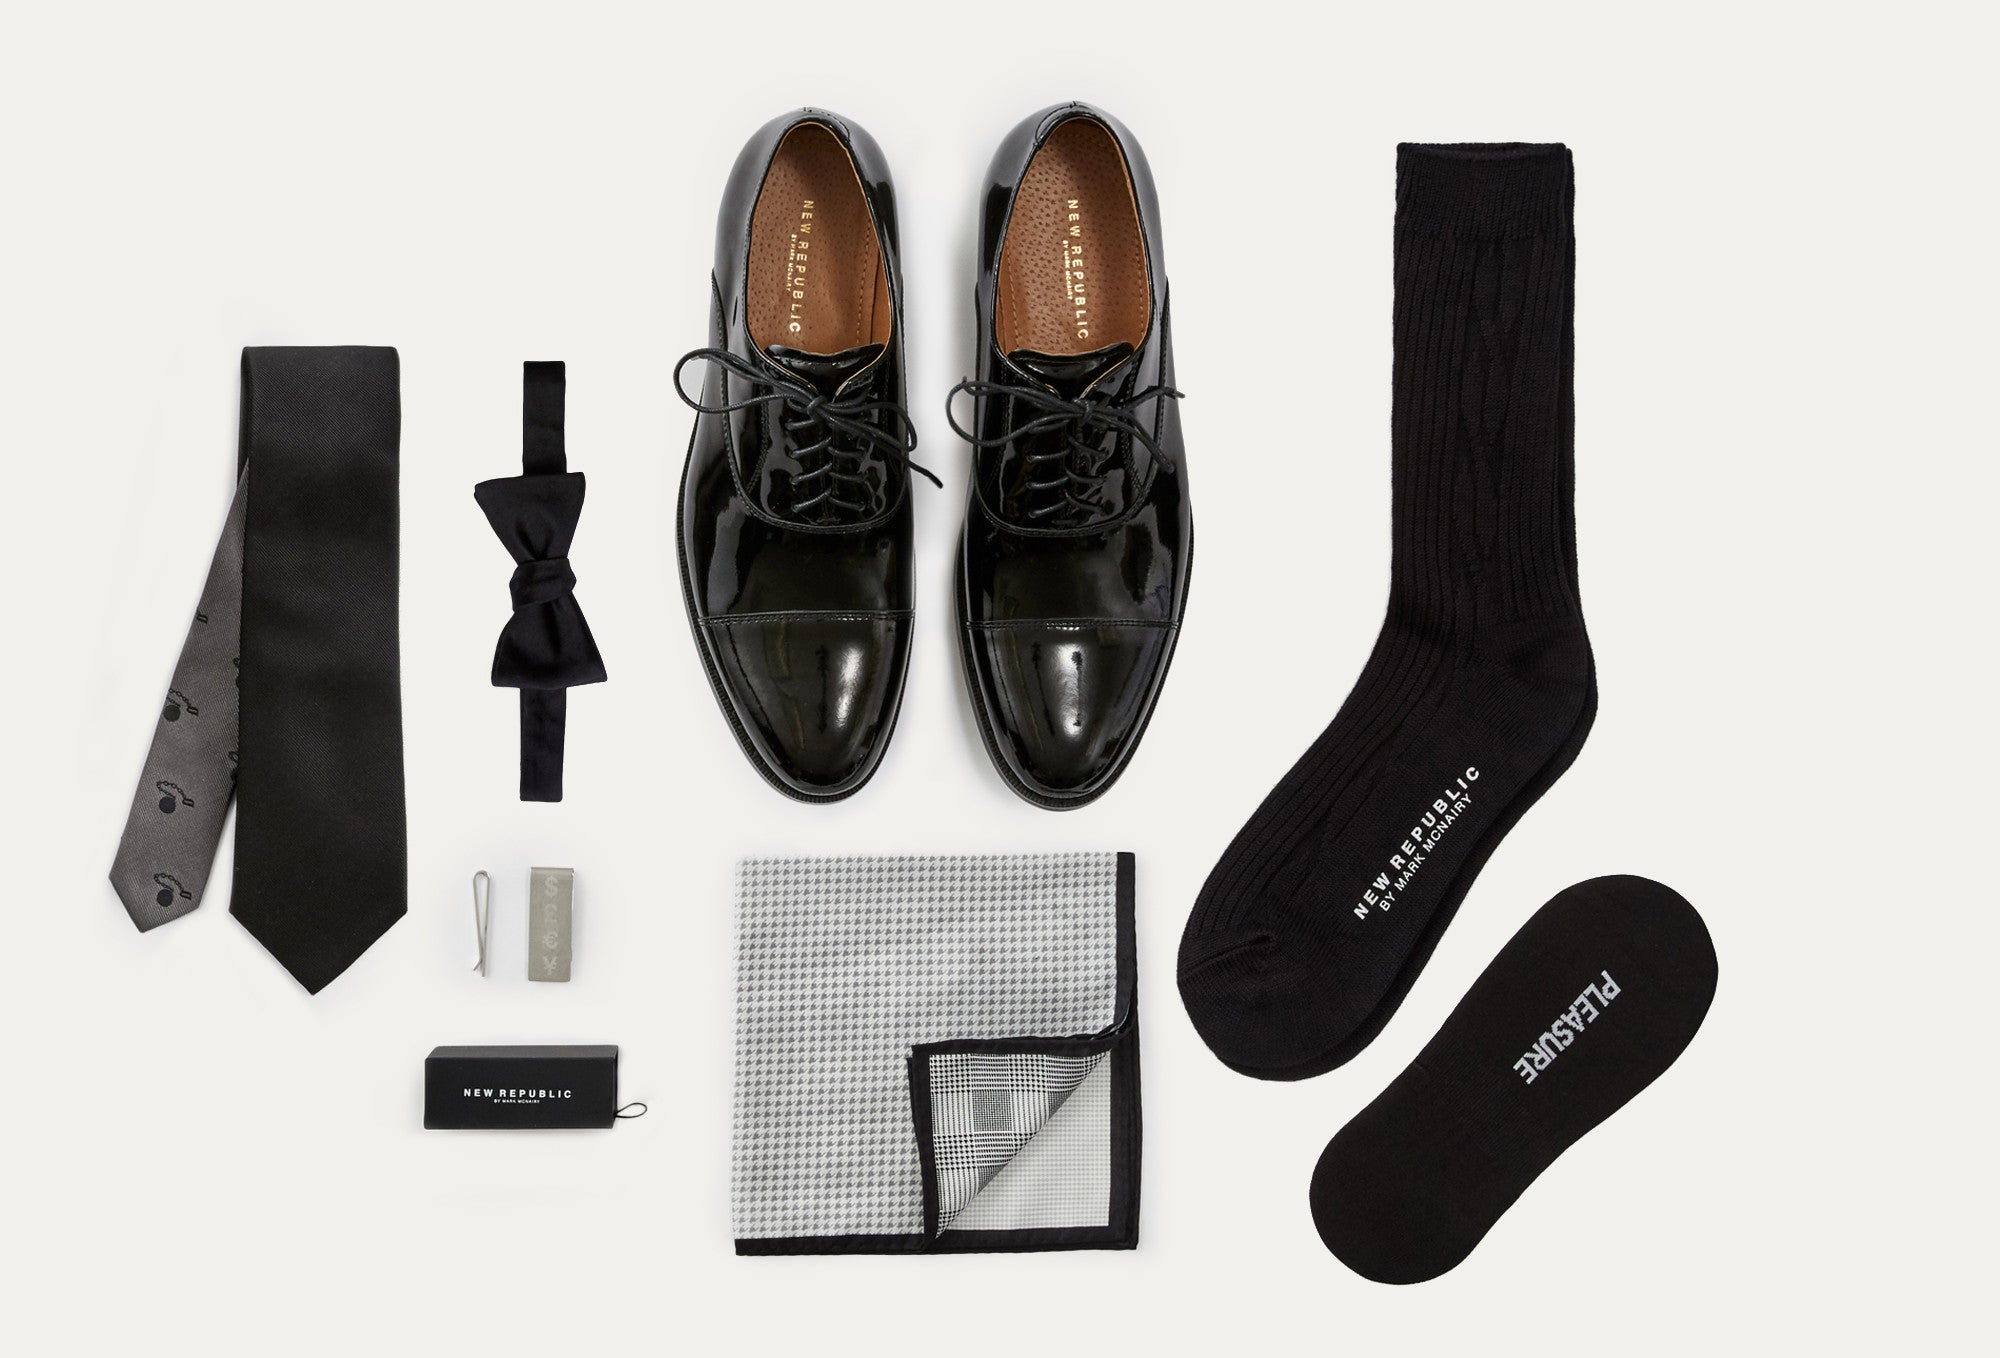 The Groomsmen Bundle